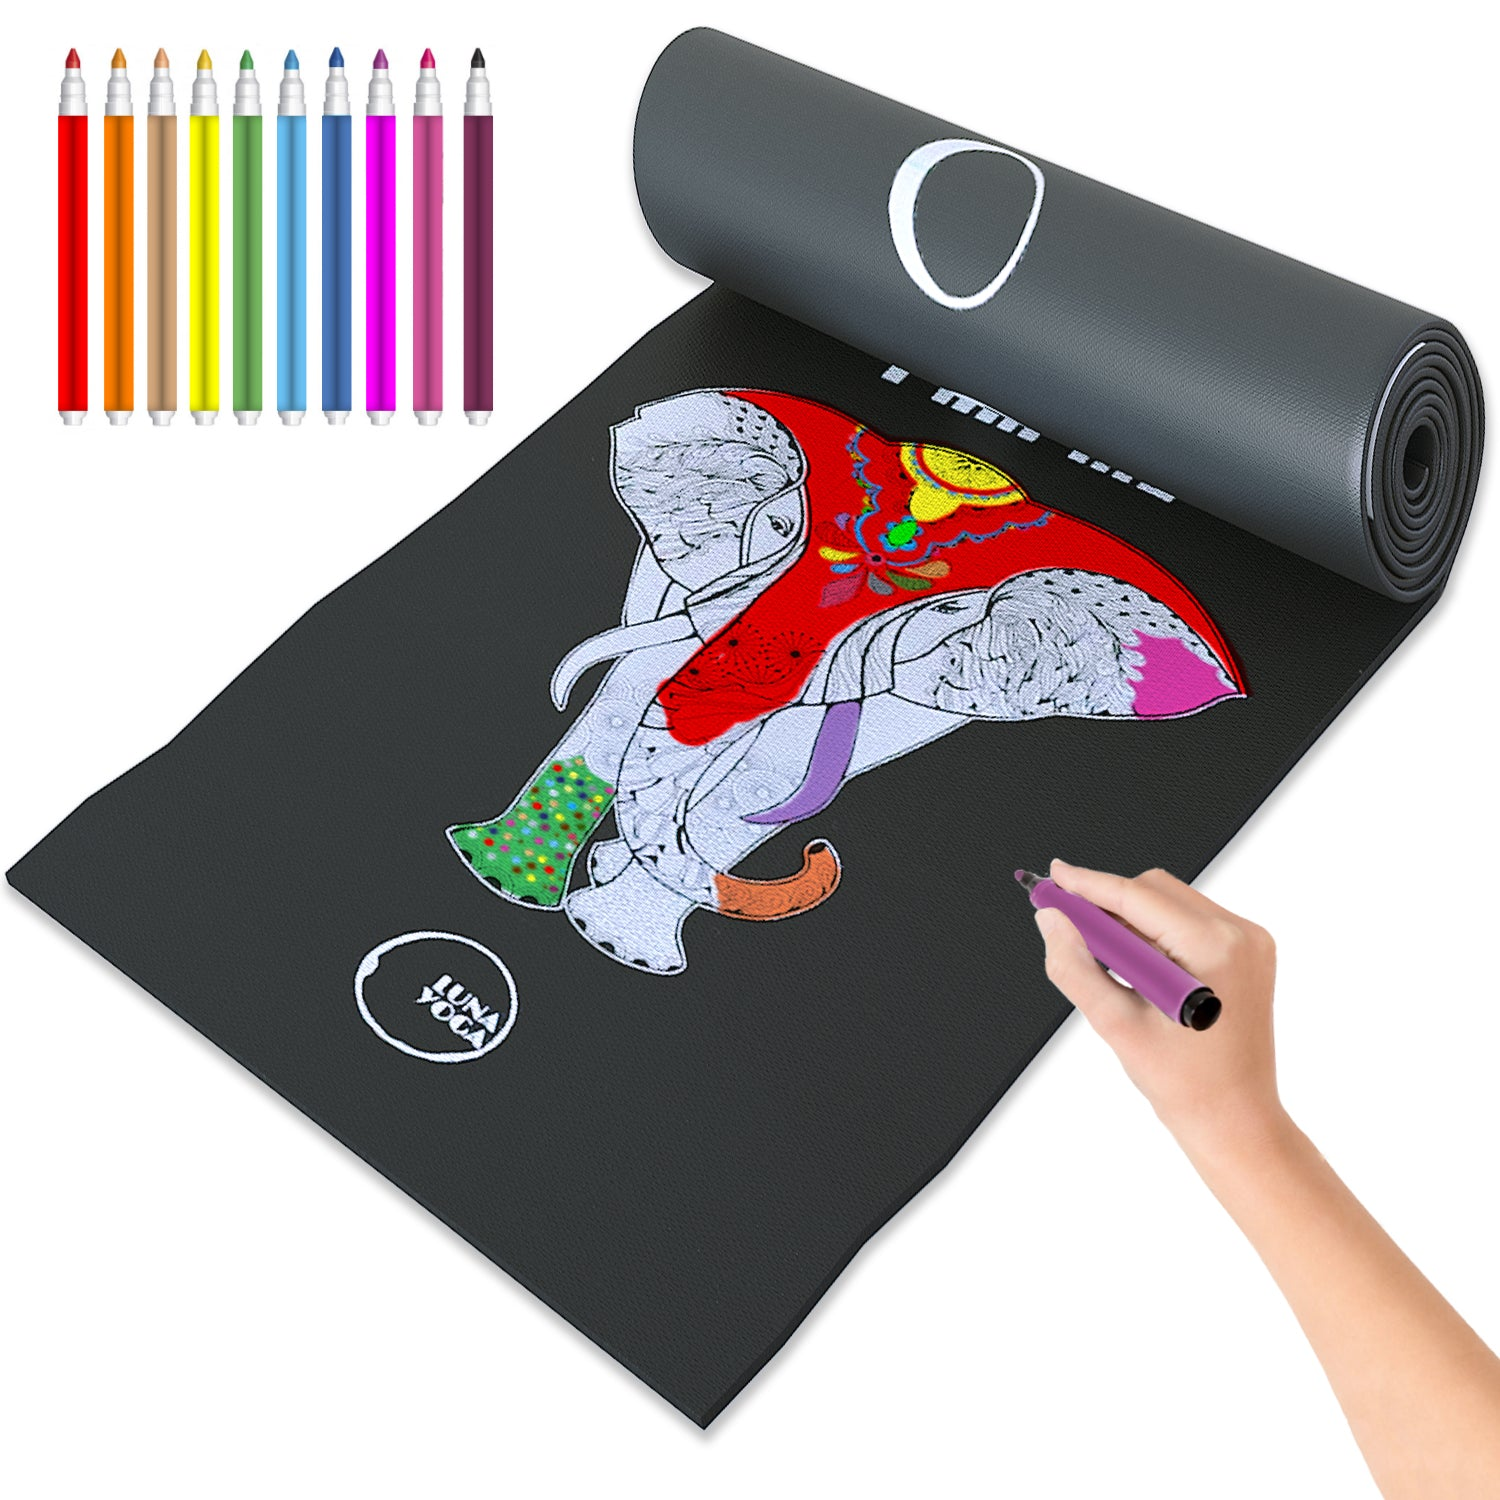 Coloring Yoga Mat for Kids 24 inches wide x 60 inches long, Elephant Print